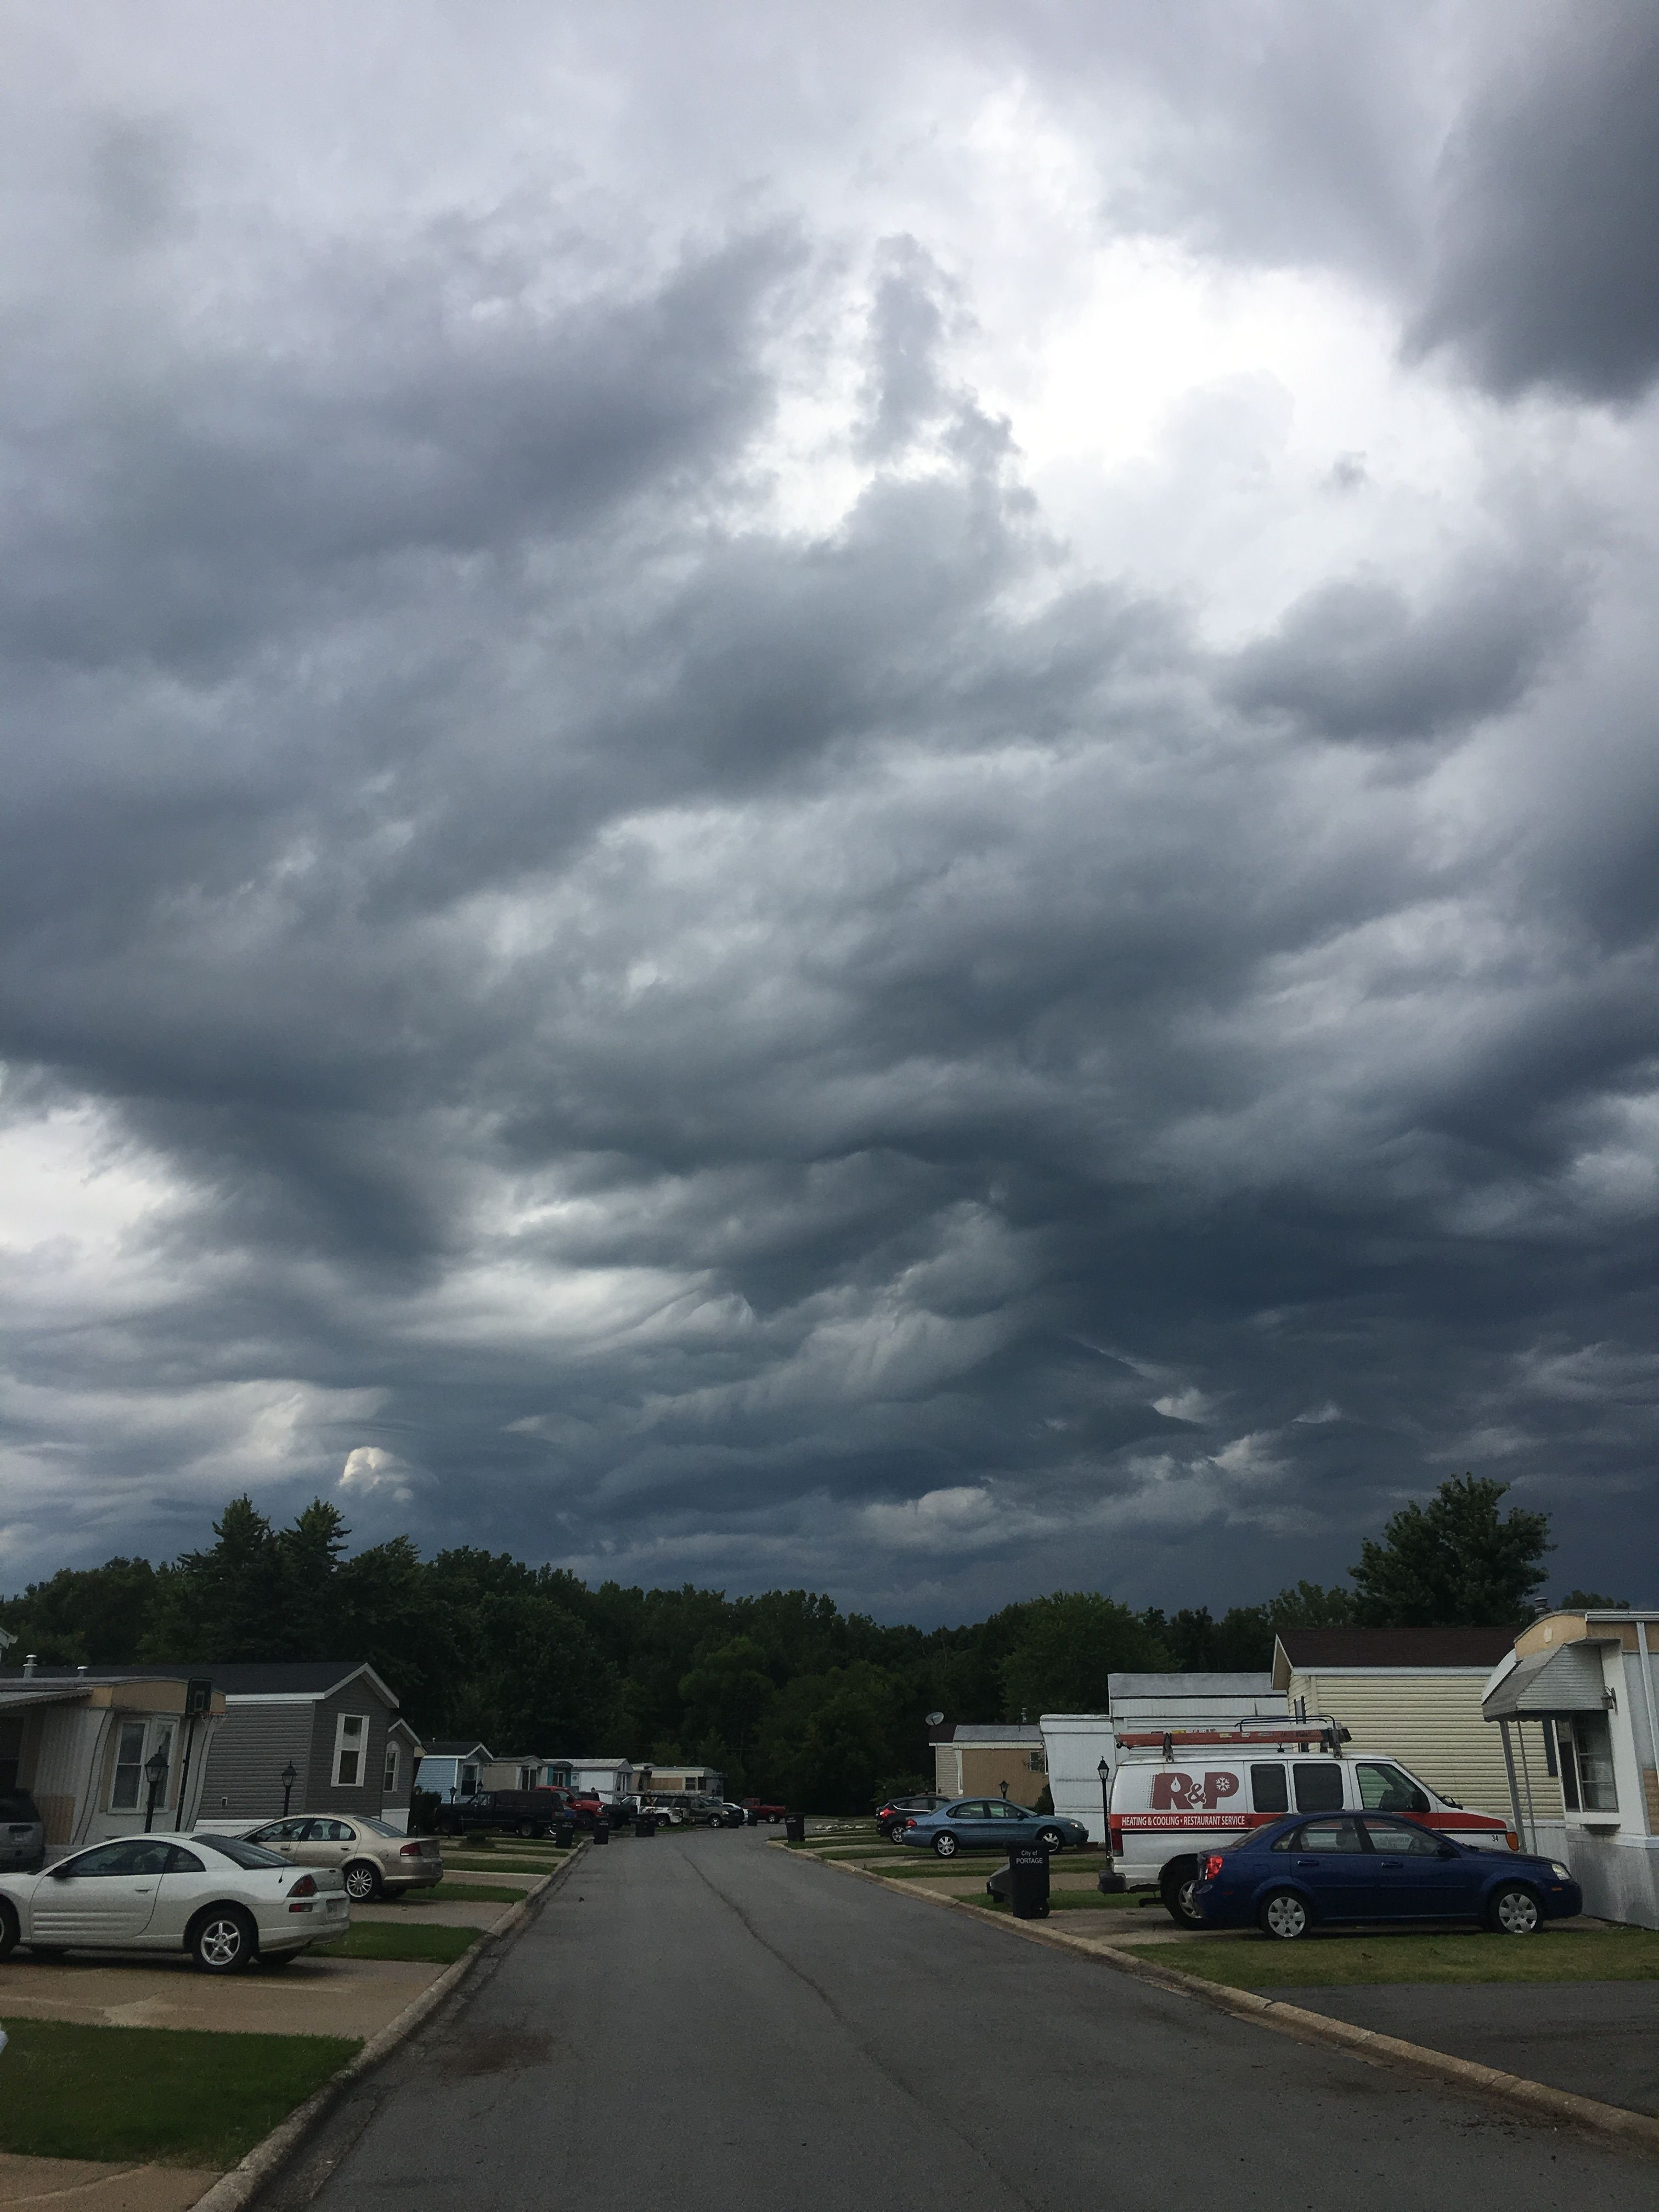 Accufan Weather Photo Of The Day Dark Skies And Clouds In Portage Indiana On July 21 Captured By Janet M Ow Ly H4yg30dstts Dark Skies Sky And Clouds Sky